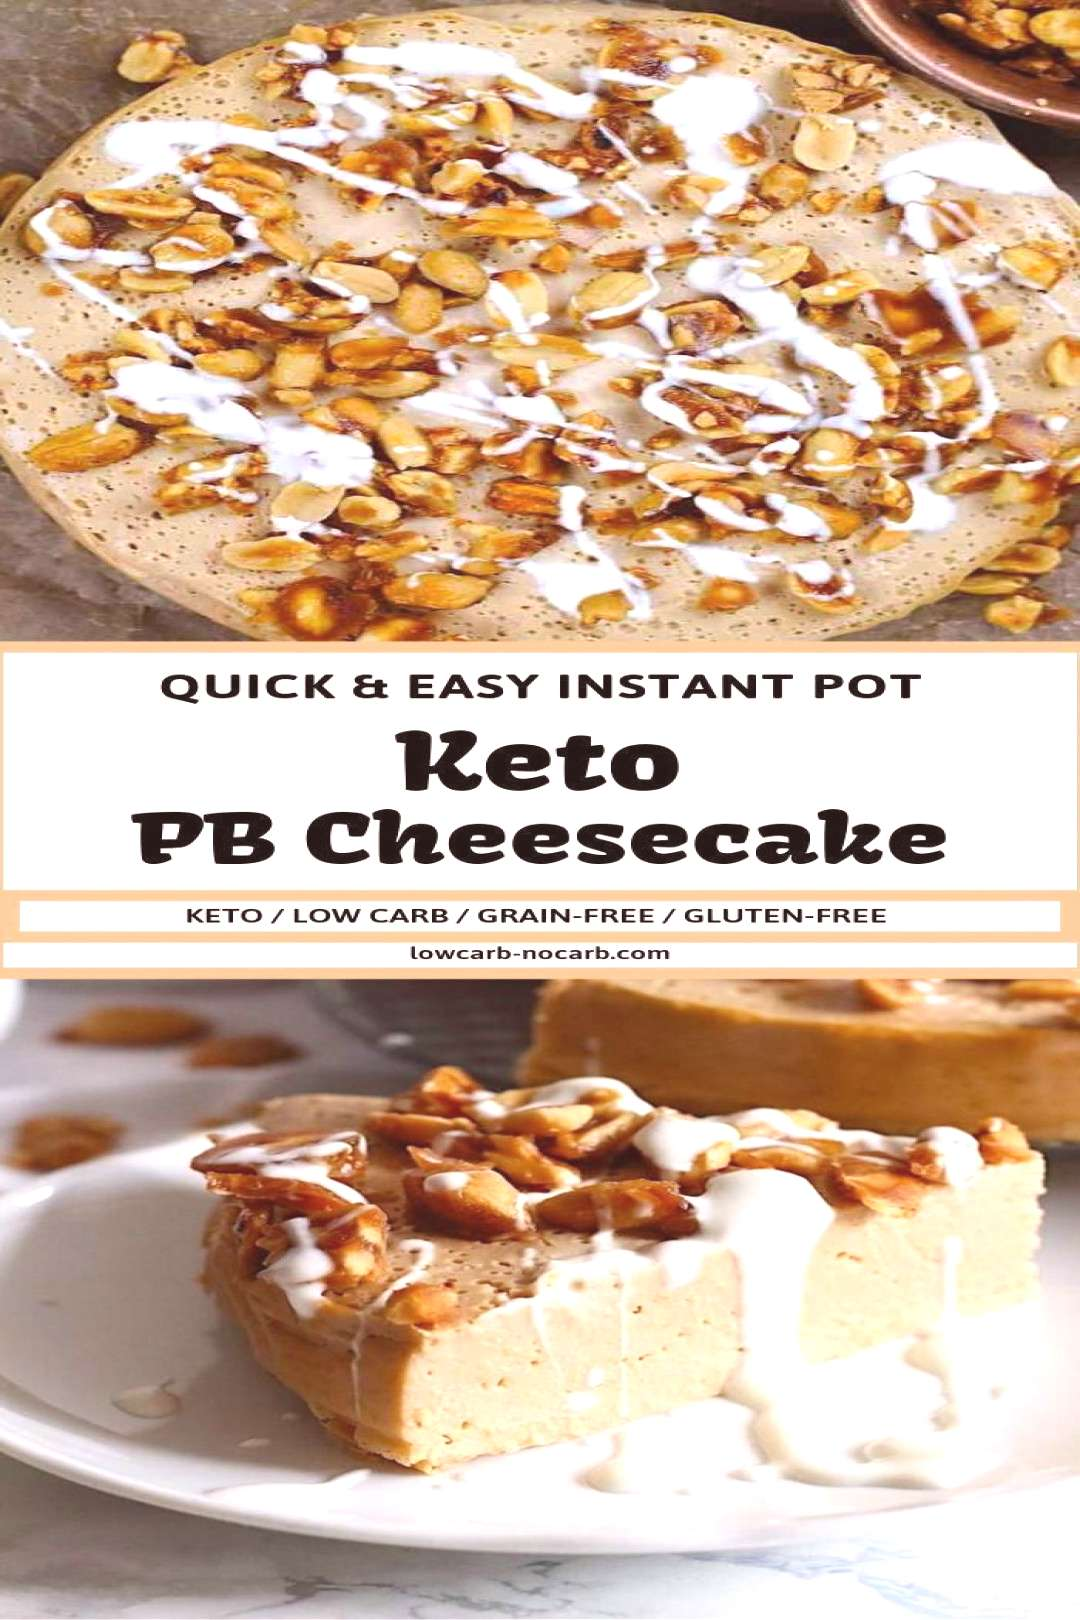 Super easy Keto Peanut butter Cheesecake made in an Instant Pot for your quick Low Carb dessert cra